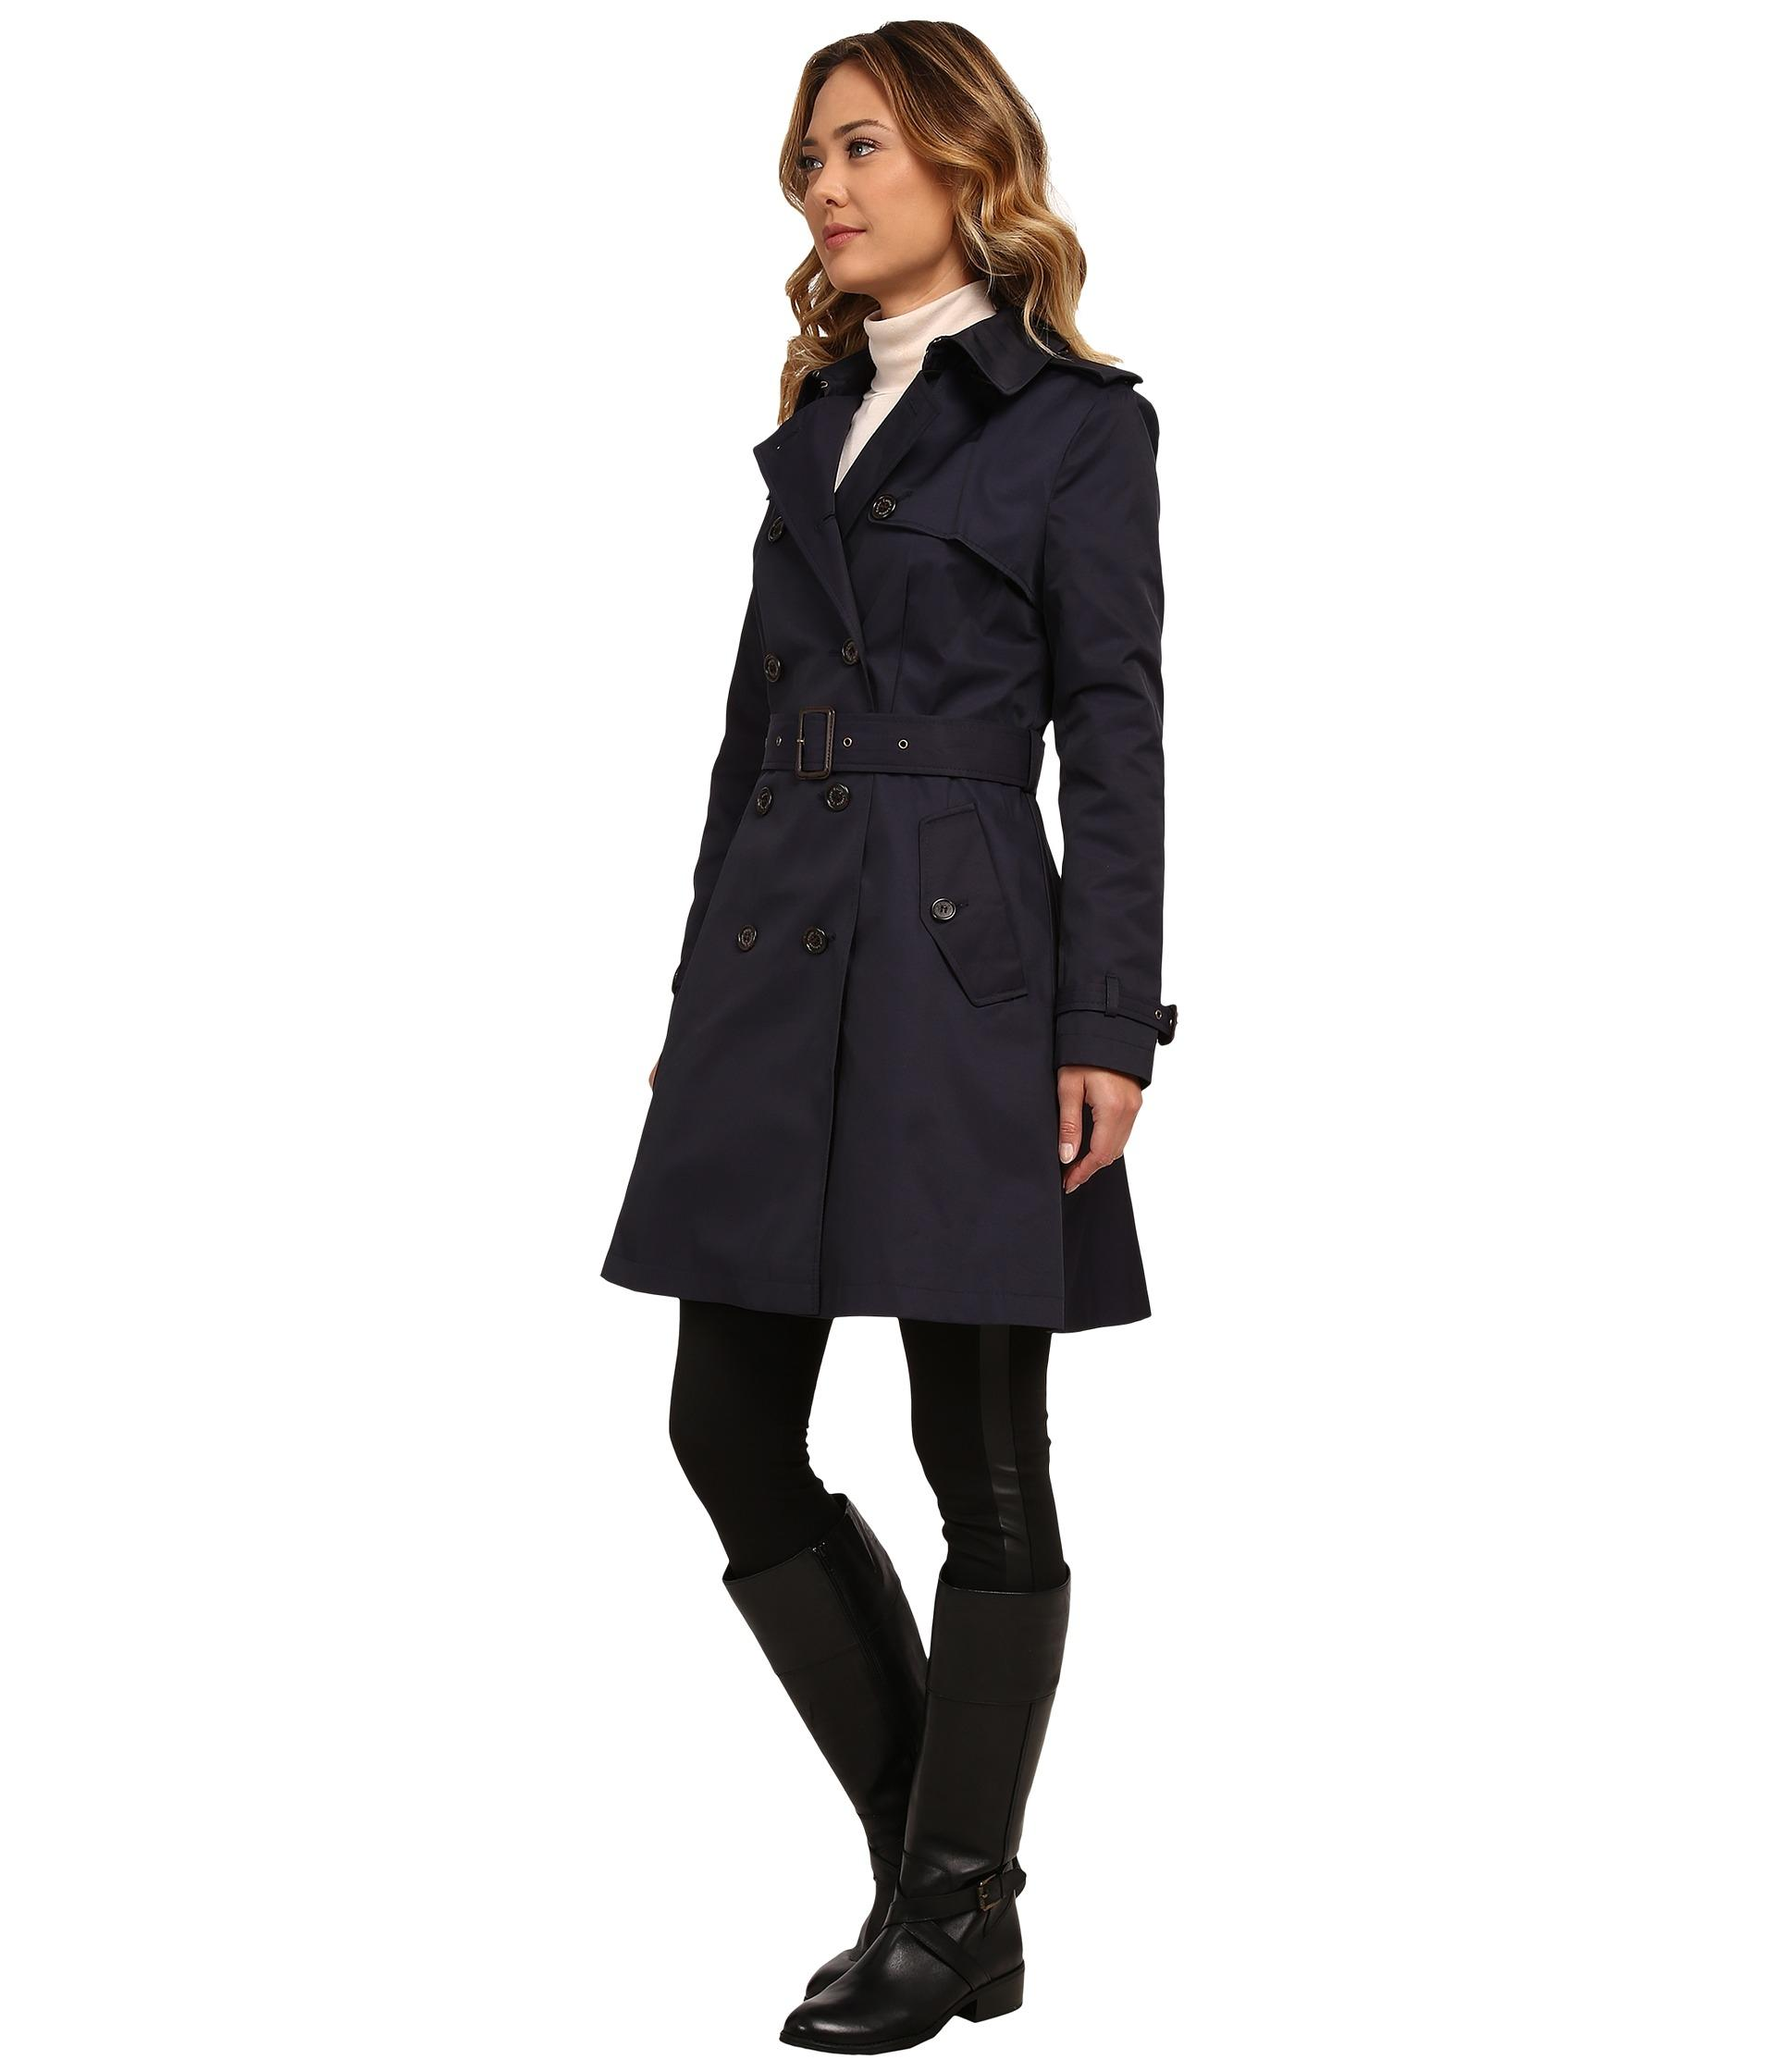 Shop iconic trench coats and car coats for men. Our heritage styles feature in three fits – slim, classic and relaxed. Sign up for email updates on the latest Burberry collections, campaigns and videos. Opens a pop-up. Please enter a valid email address. prices and delivery information will be updated in line with your new shipping.